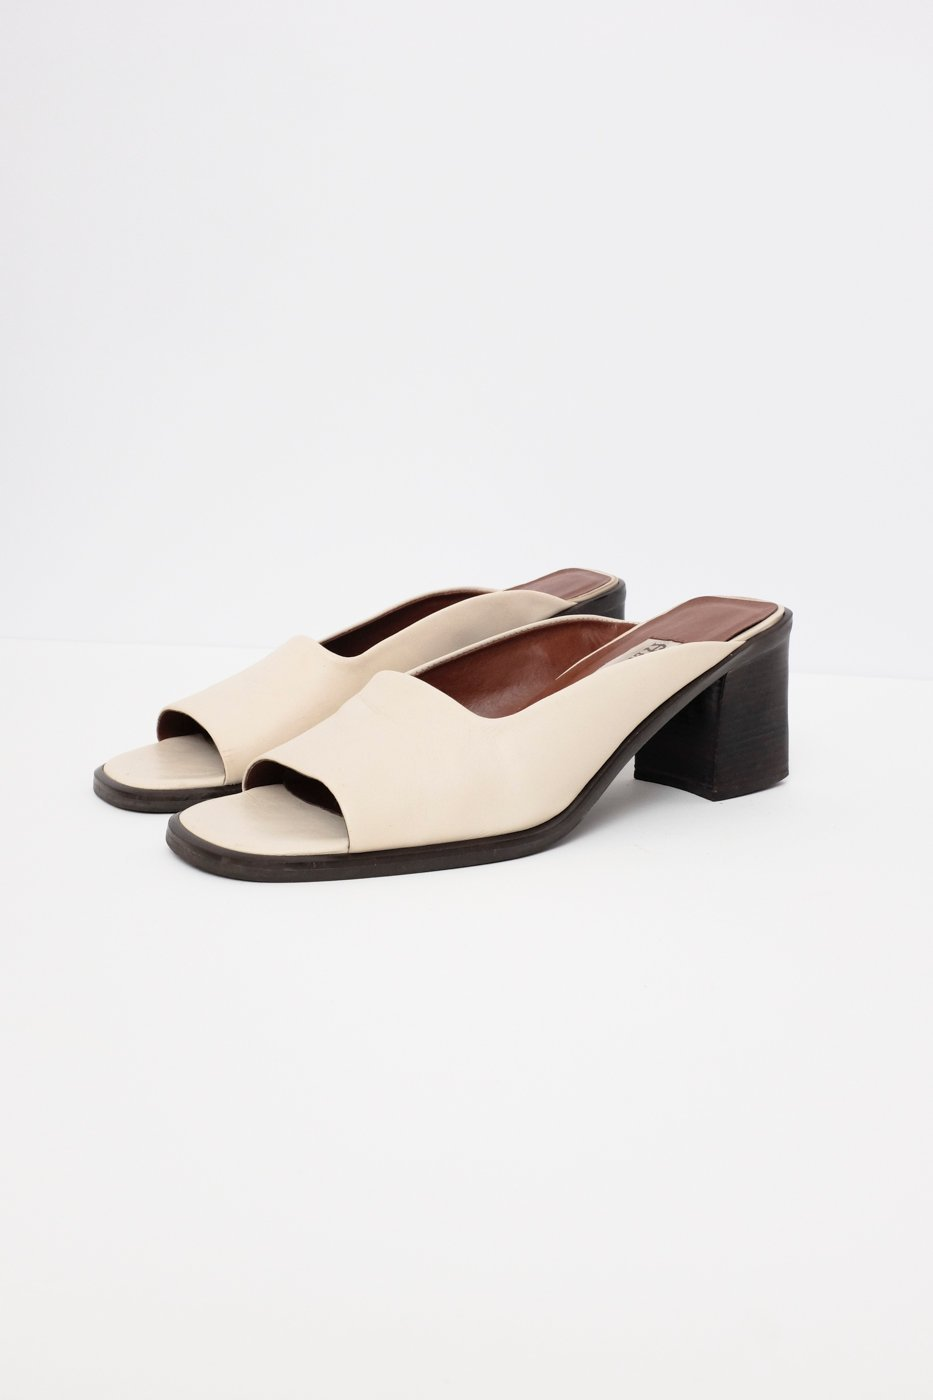 0436_AIGNER NUDE MULE LEATHER VINTAGE SANDALS